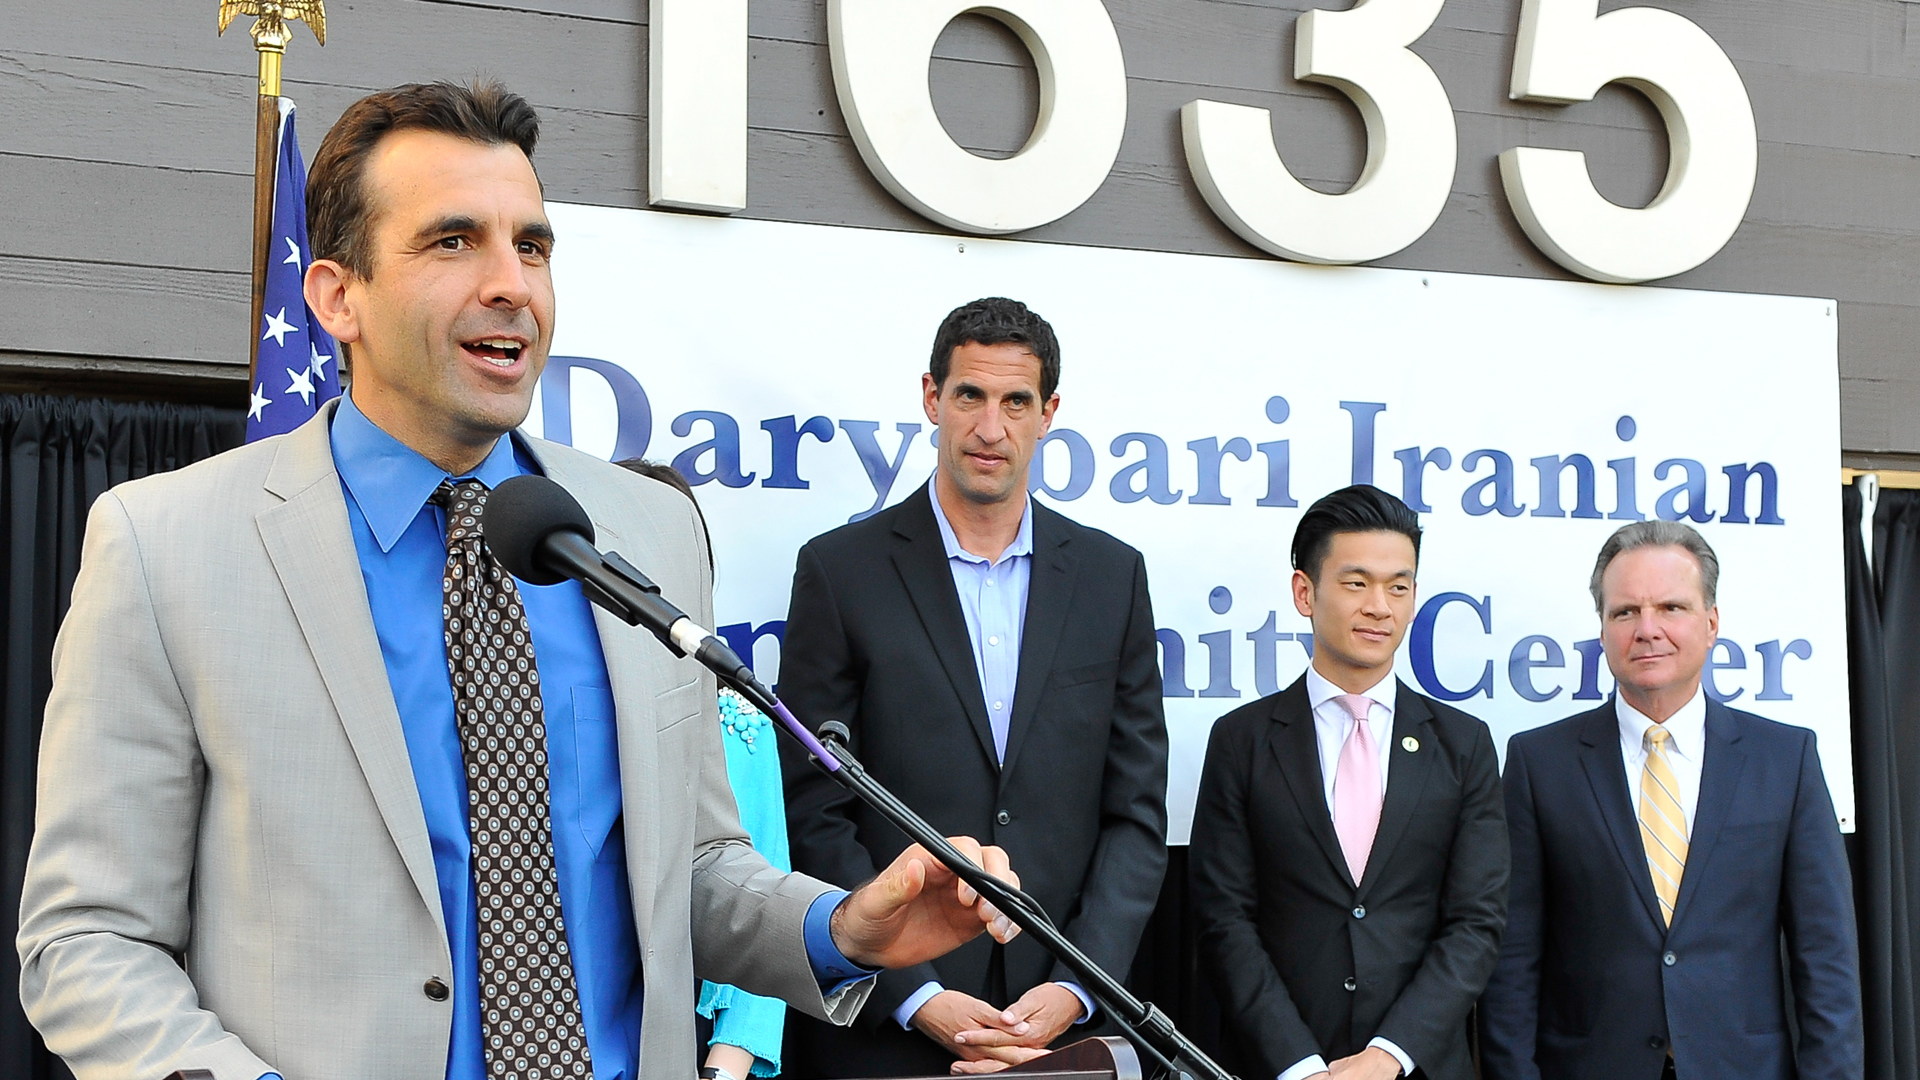 Mayor Sam Liccardo, left, speaks during an event in San Jose on April 16, 2015.. (Credit: Steve Jennings/Getty Images for PARS EQUALITY CENTER)